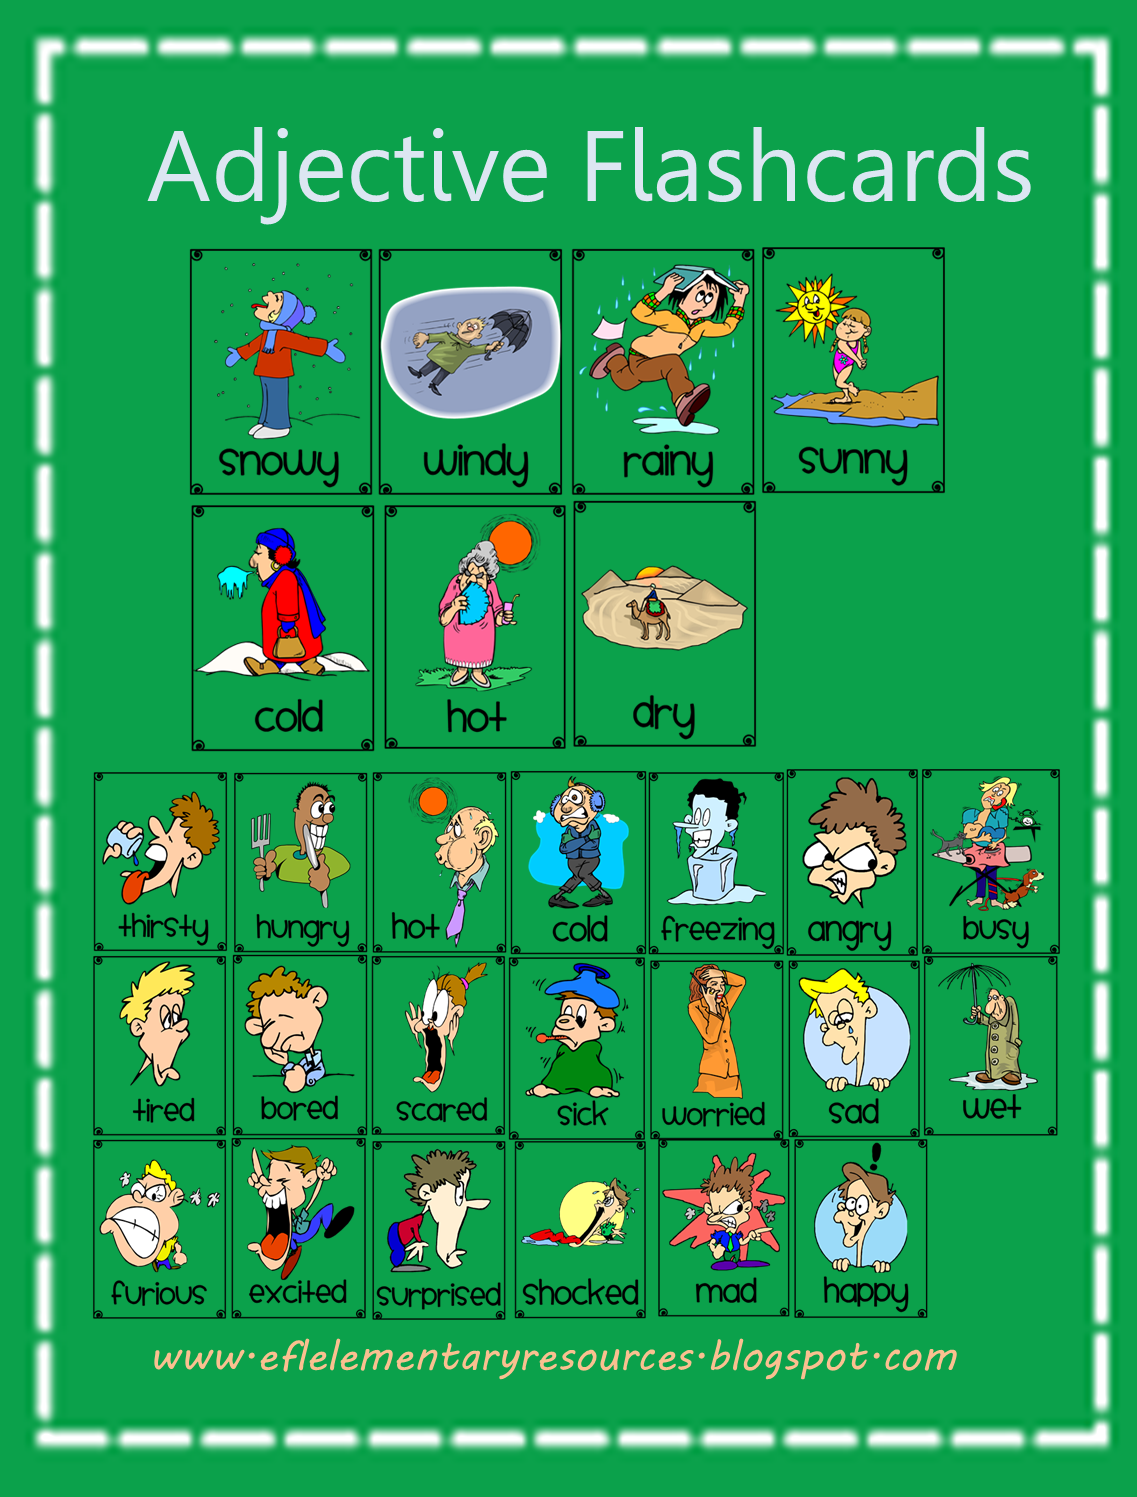 Worksheet Elementary Adjectives efl elementary teachers adjectives for ell another set of 43 free flashcards